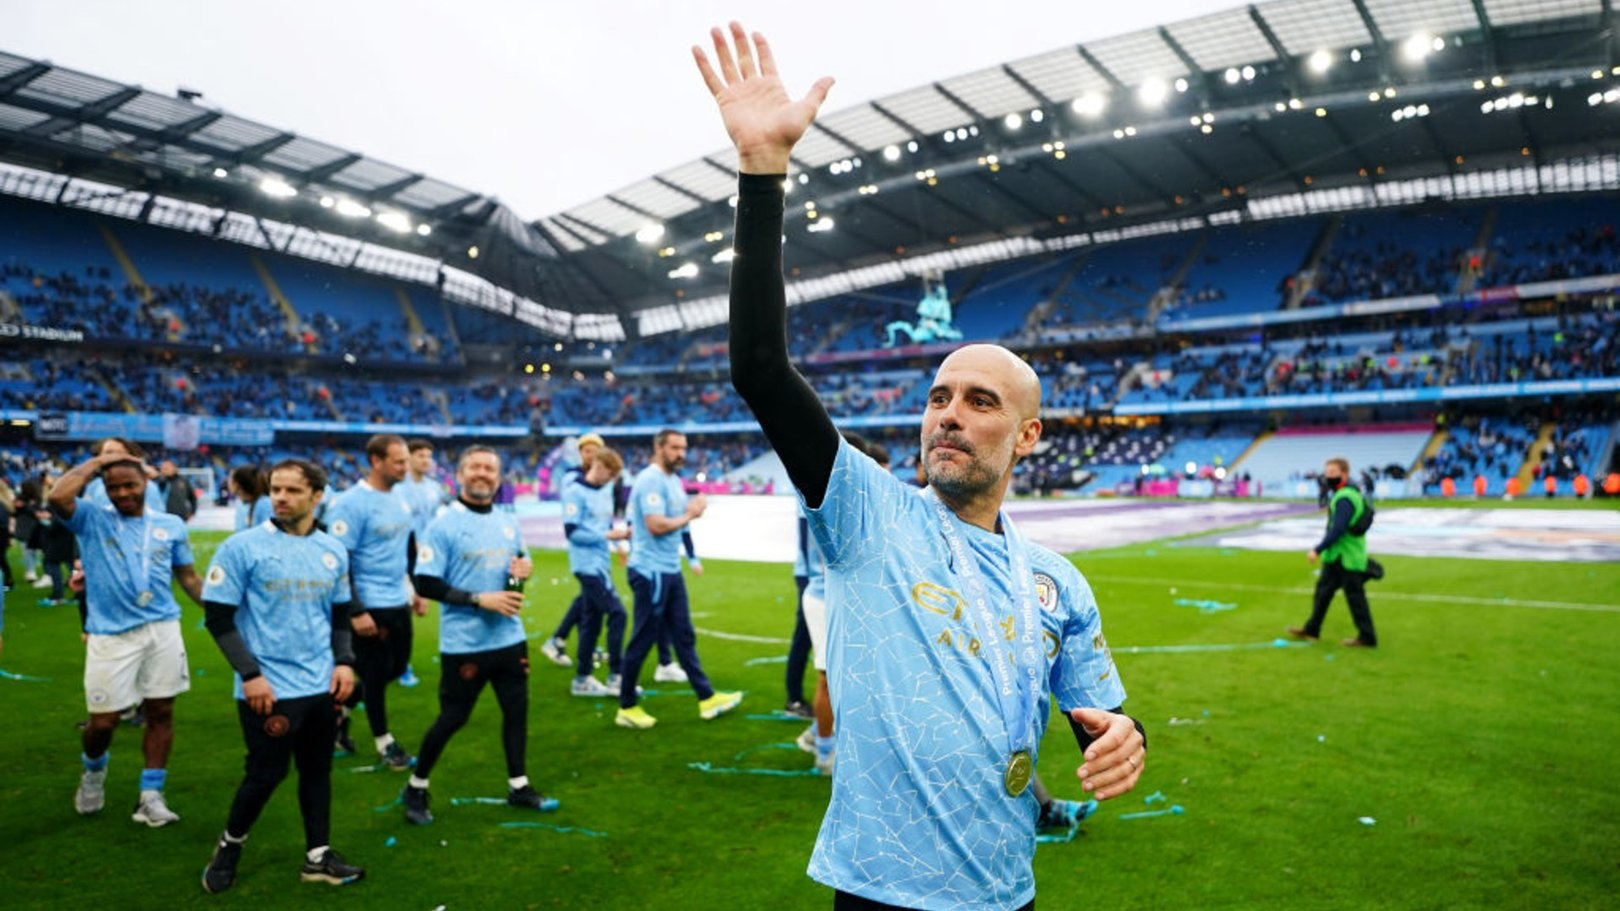 Test your knowledge on Pep's career at City so far